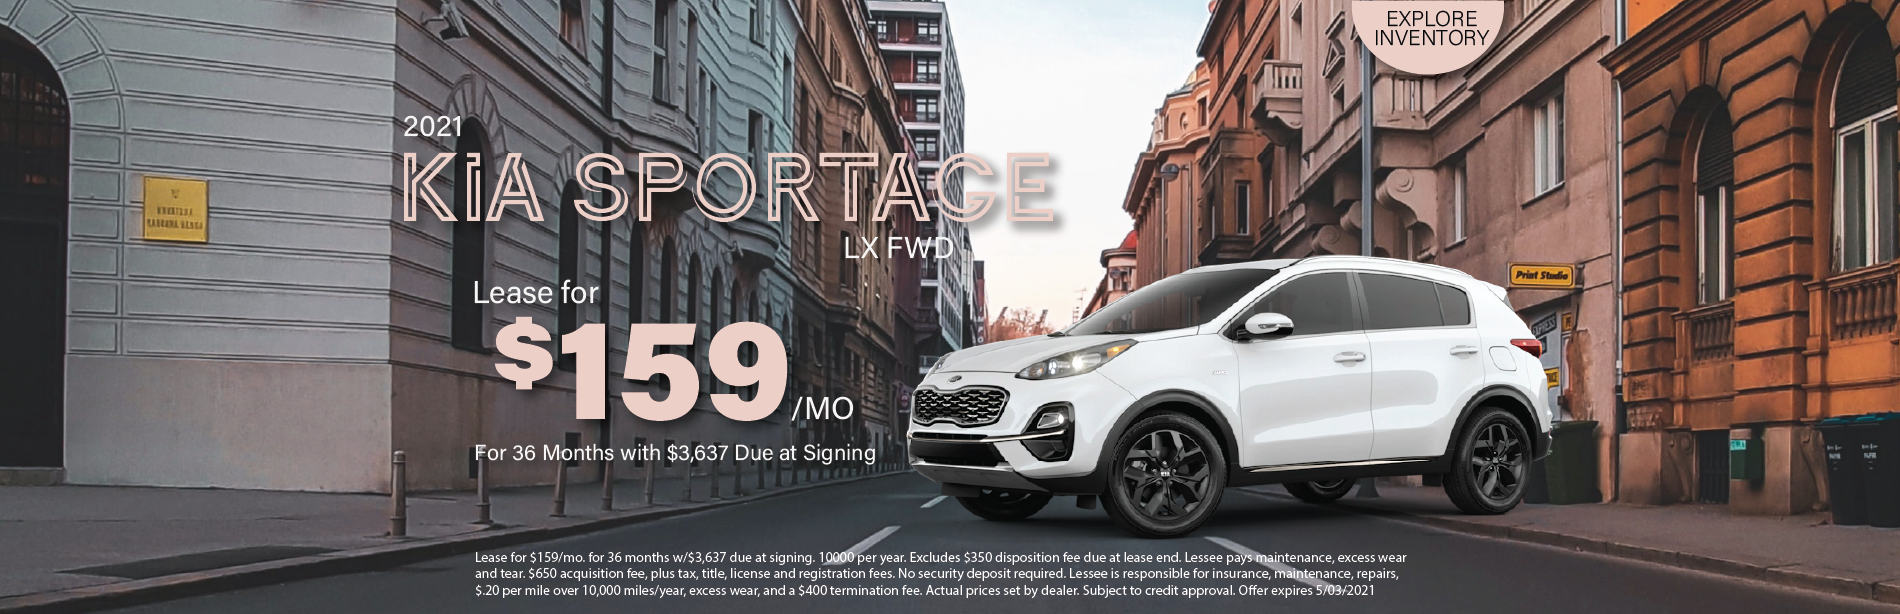 Lafontaine Kia Sportage- April 2021